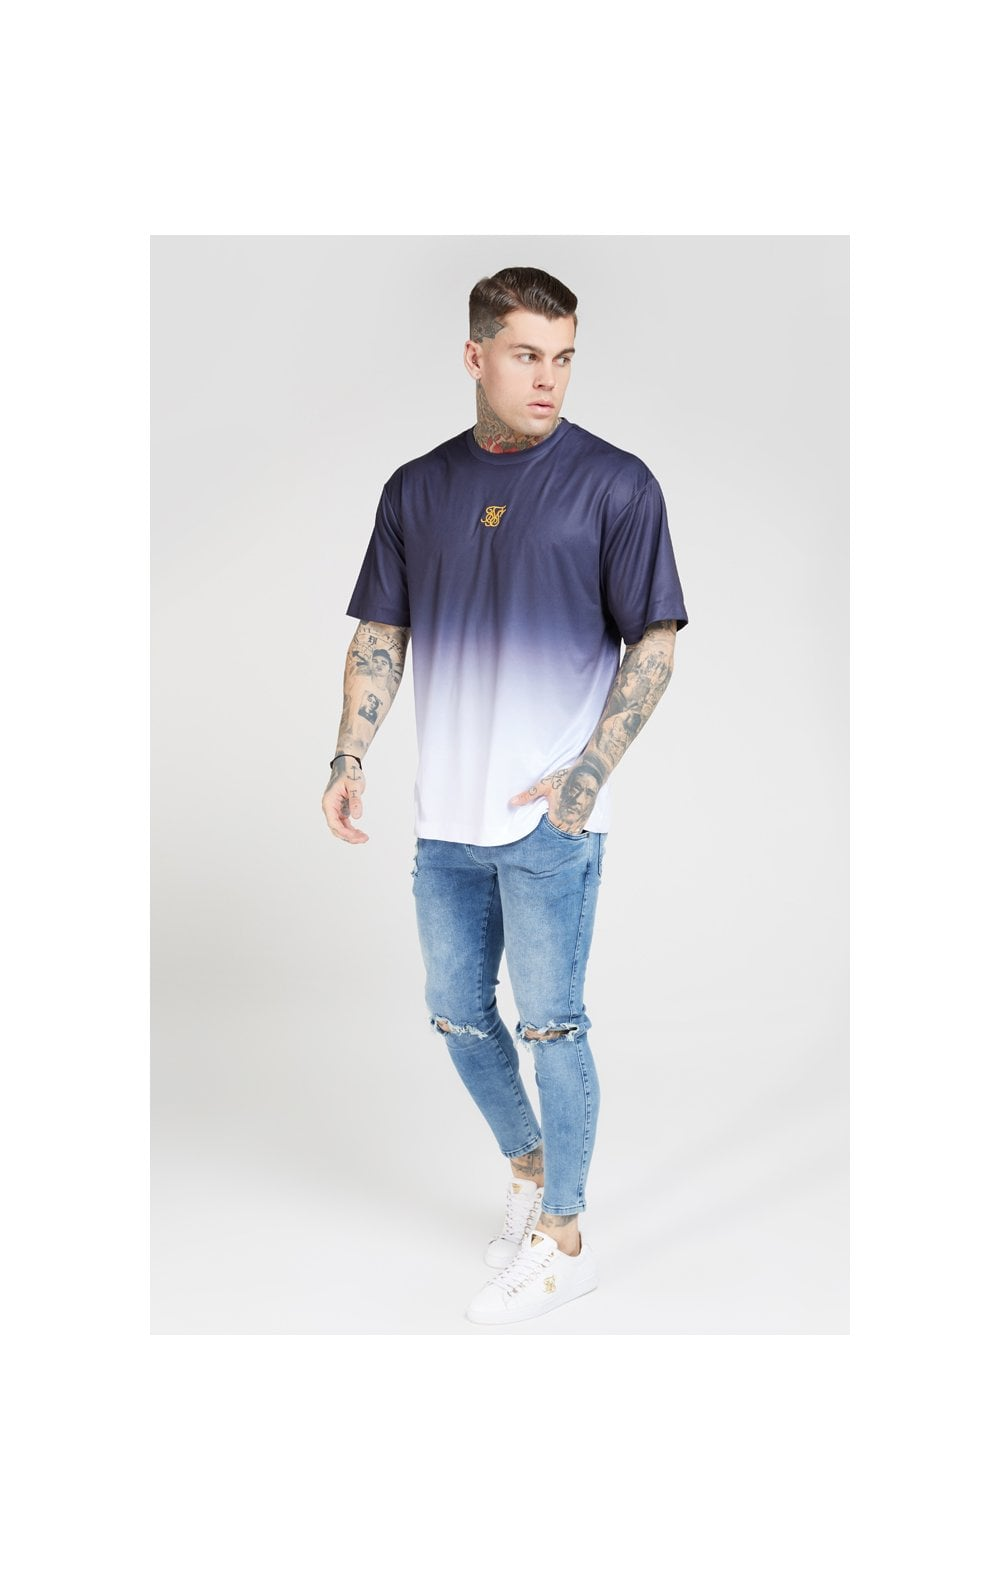 Load image into Gallery viewer, SikSilk S/S Essential Tee - Navy & White (3)